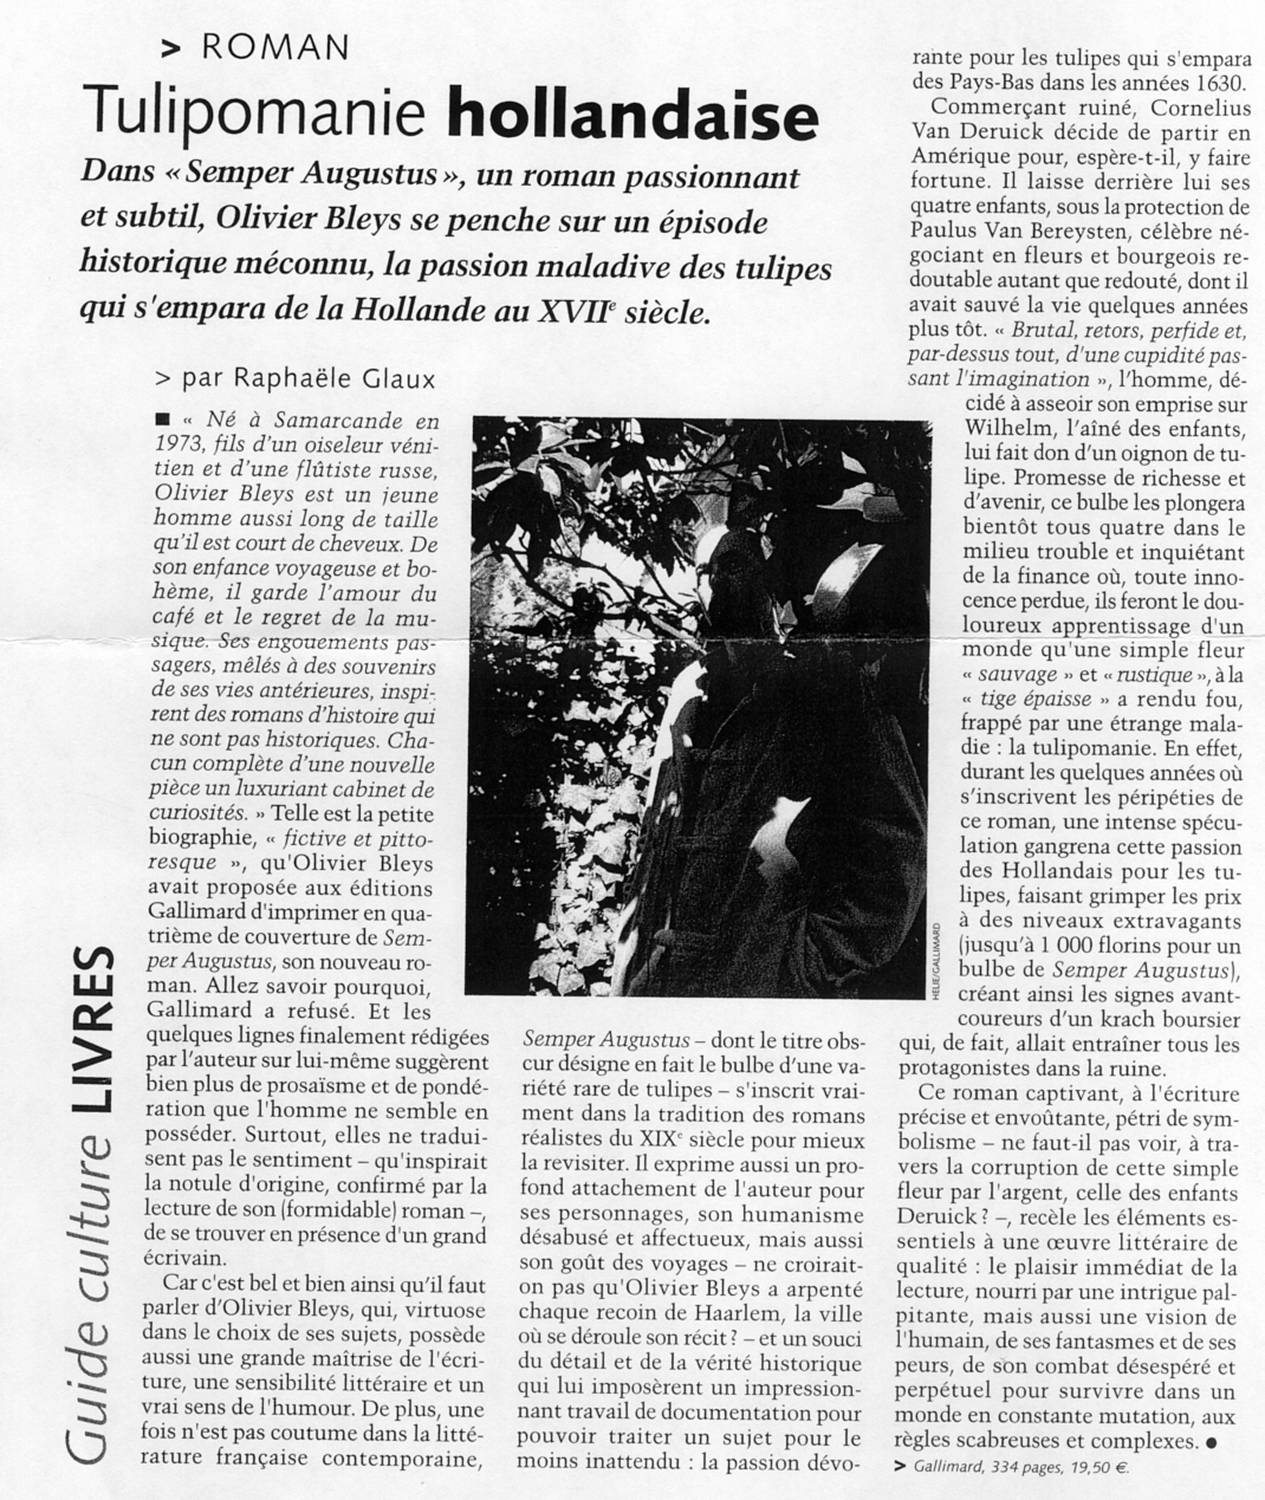 article-le-spectacle-du-monde-mini